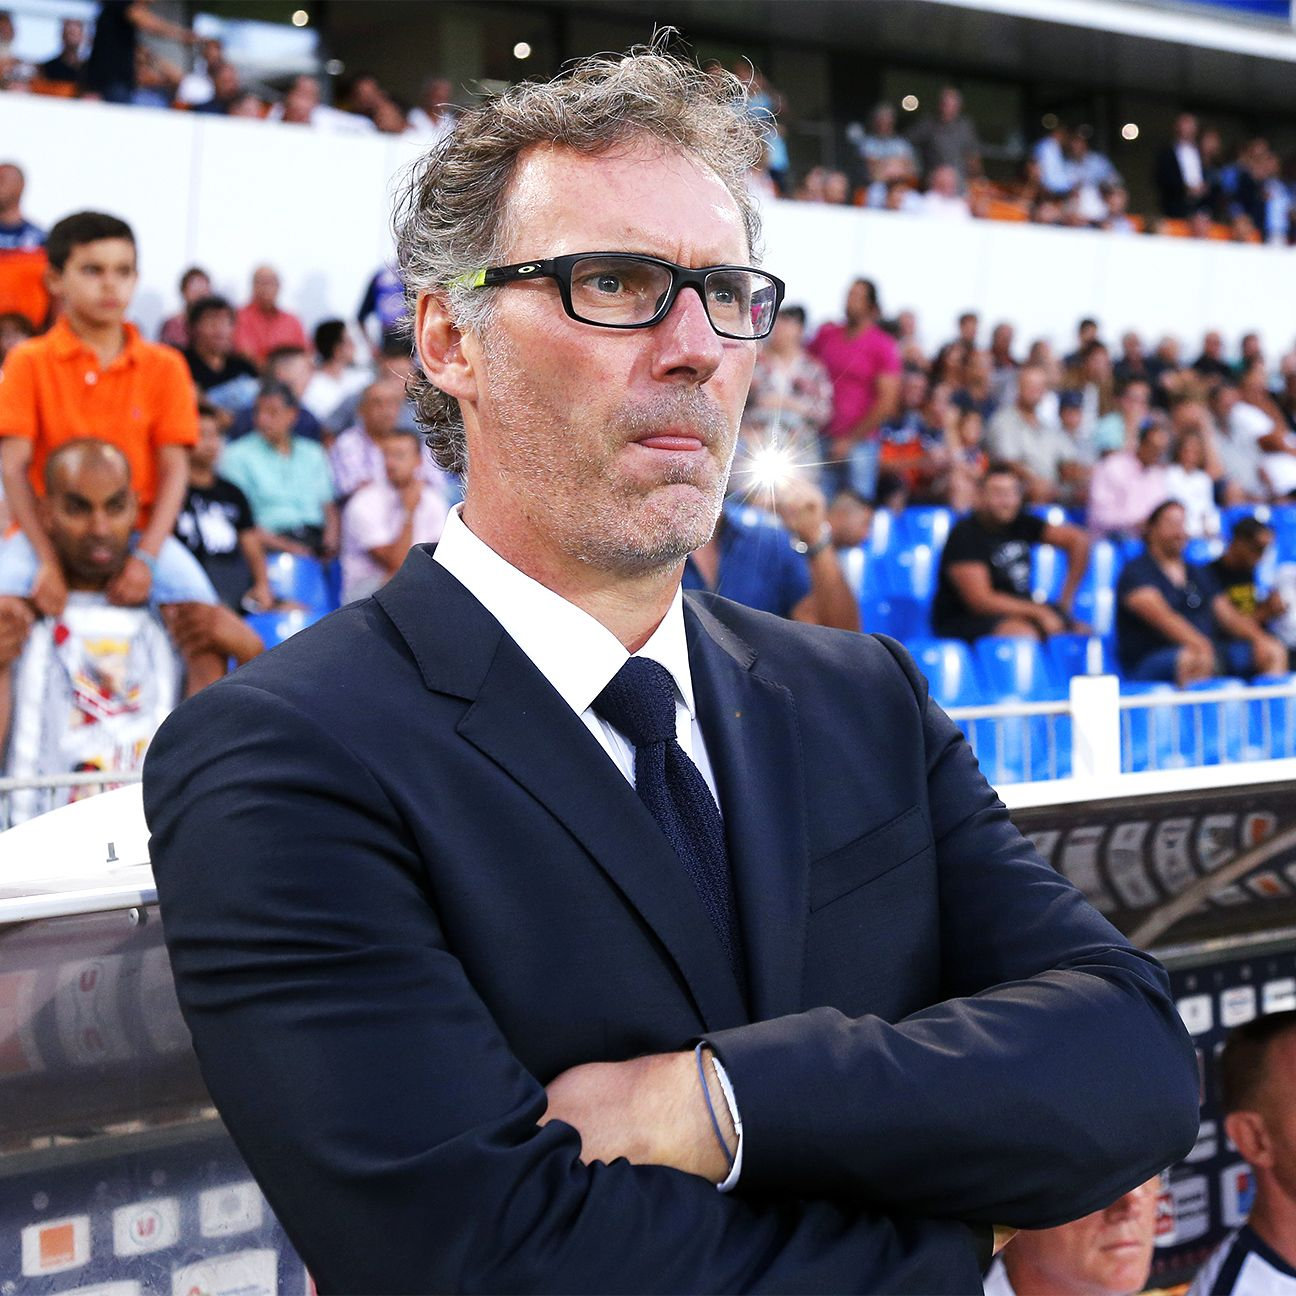 Laurent Blanc's PSG have yet to taste defeat this season in Ligue 1.